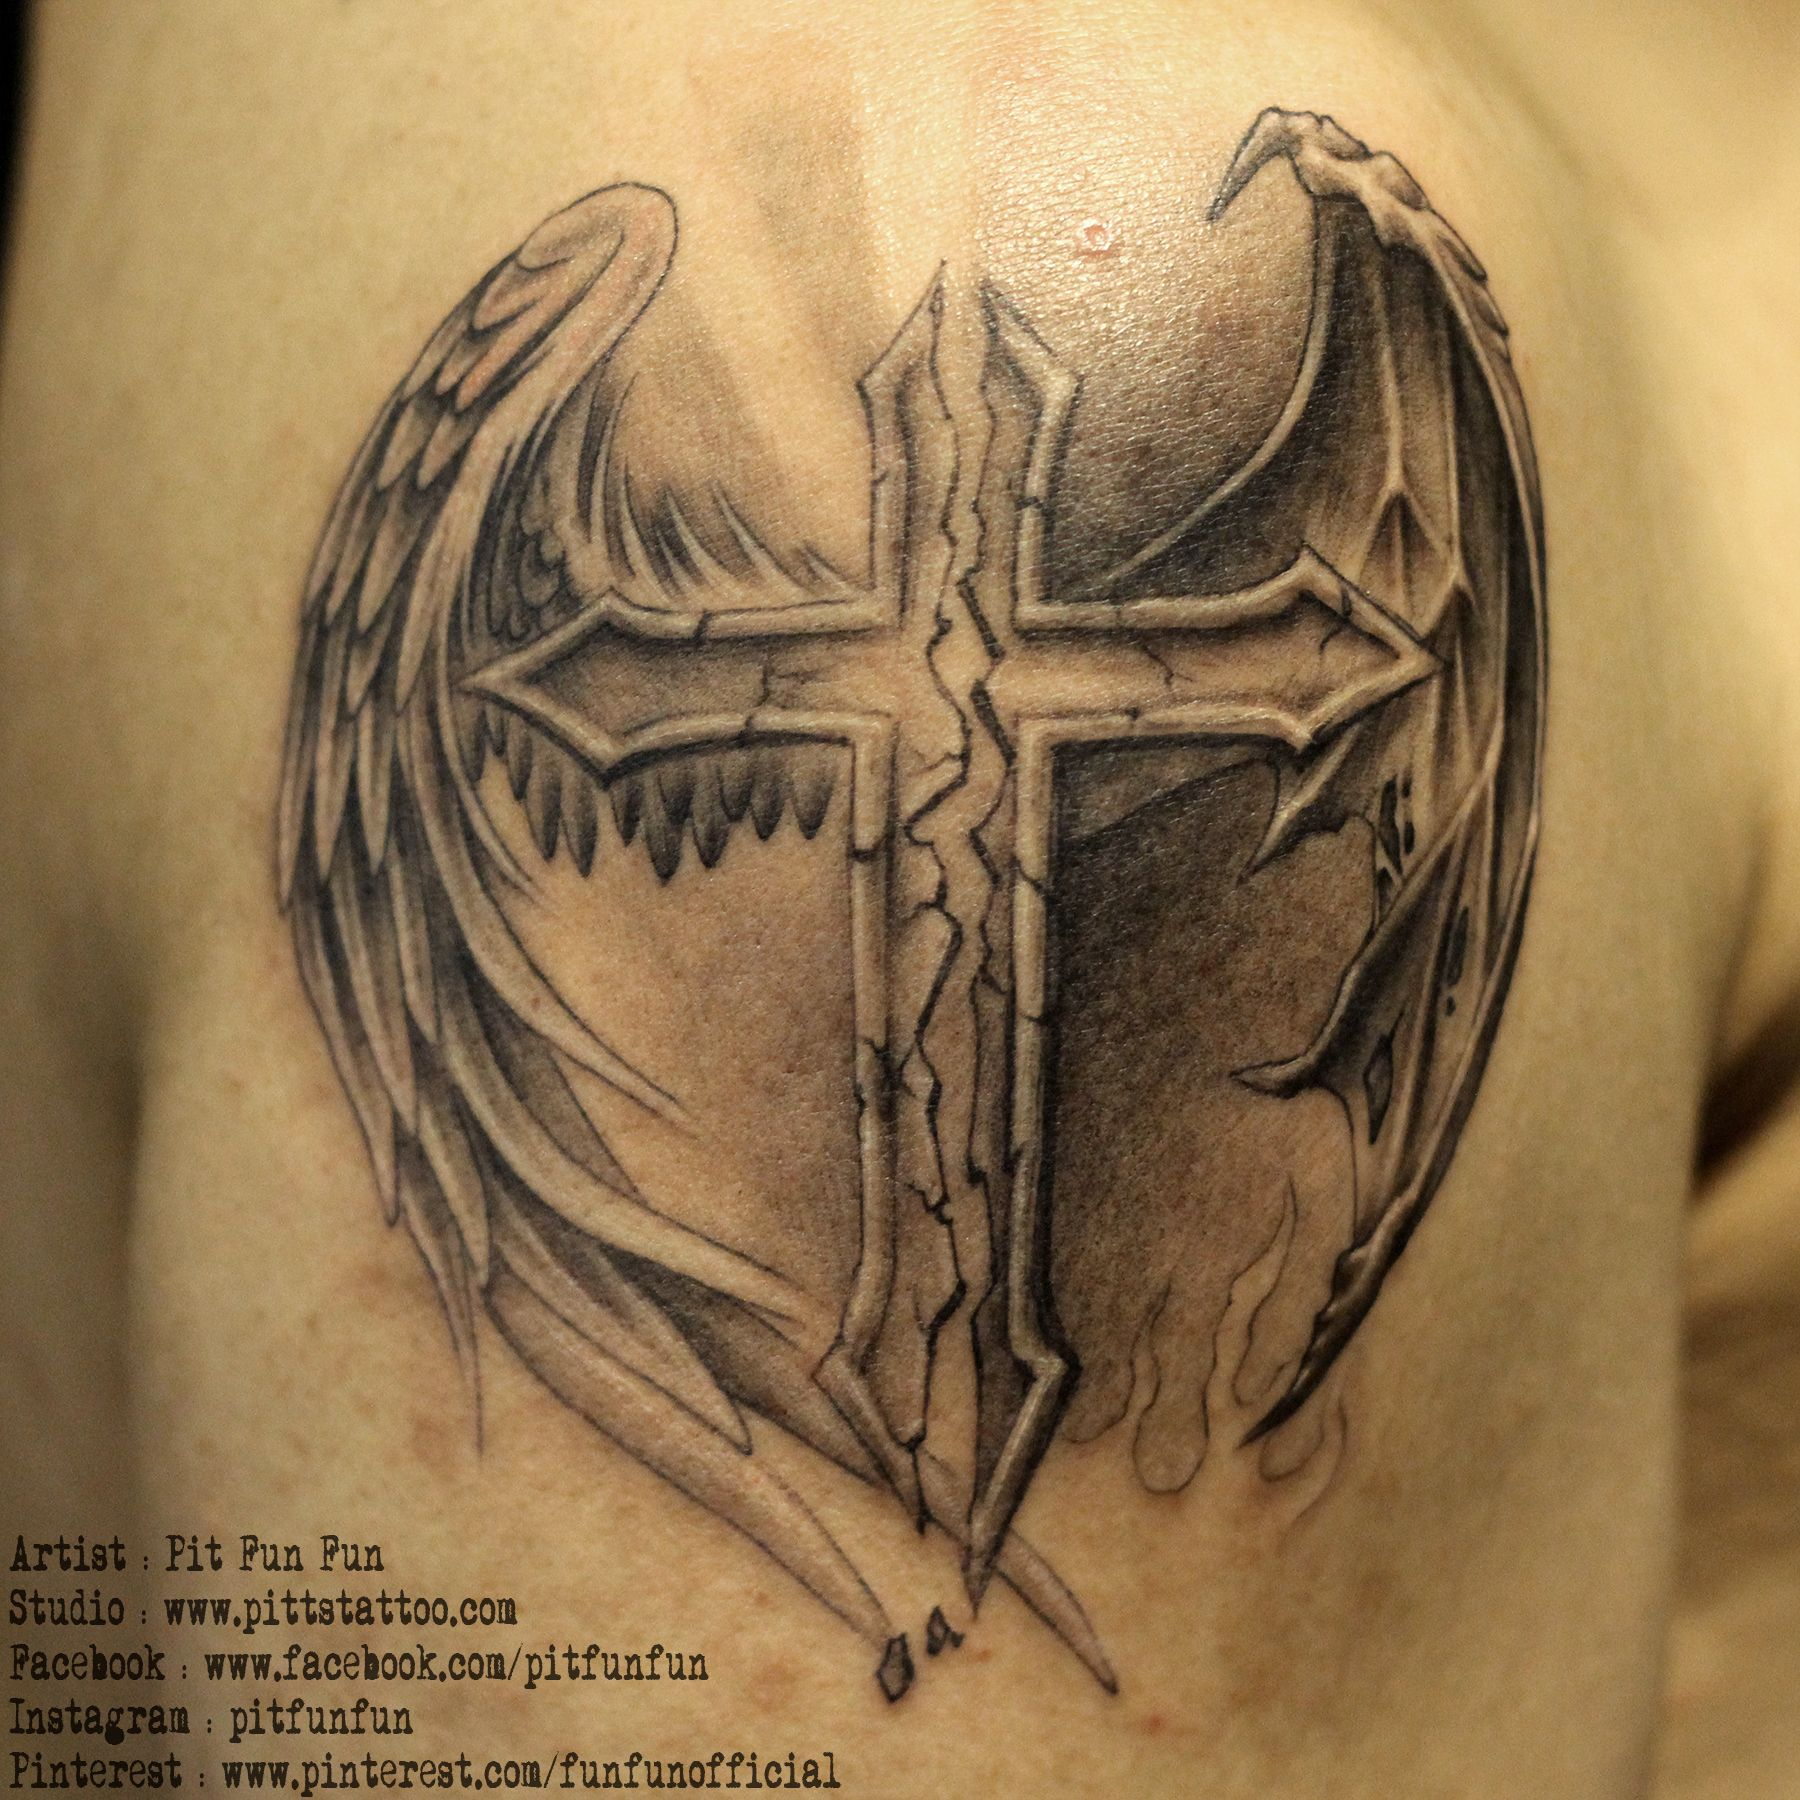 Cross with angel and demon wings . www.pittstattoo.com ...